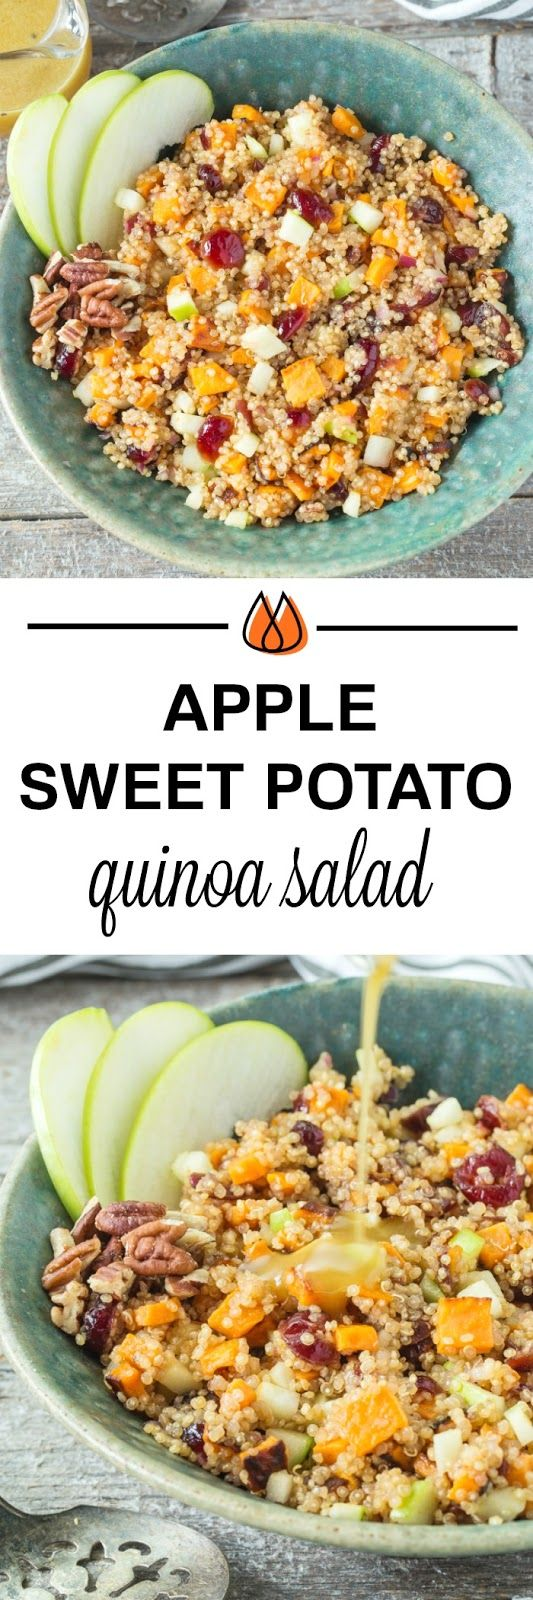 Your taste buds will love this tasty Apple Sweet Potato Quinoa Salad that is full of flavor and makes the perfect vegetarian side dish for dinner or holidays!